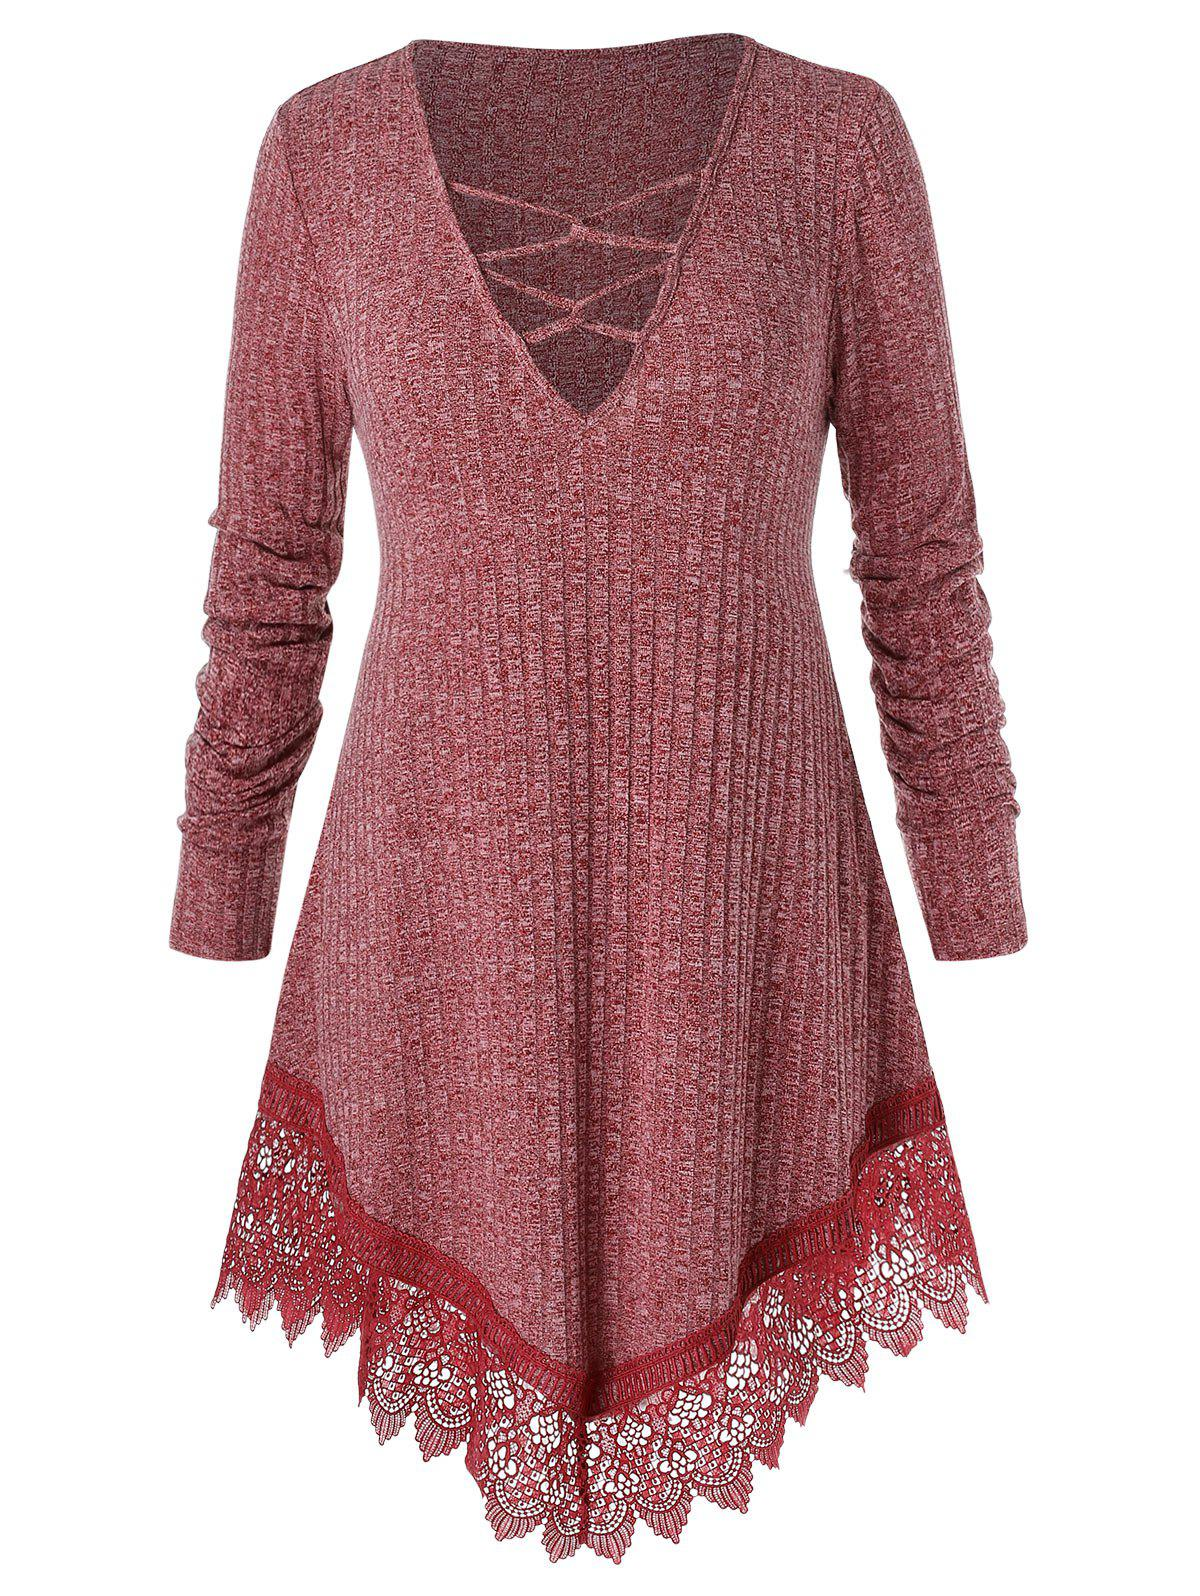 Plus Size Criss Cross Lace Panel Tunic Sweater - CHERRY RED L